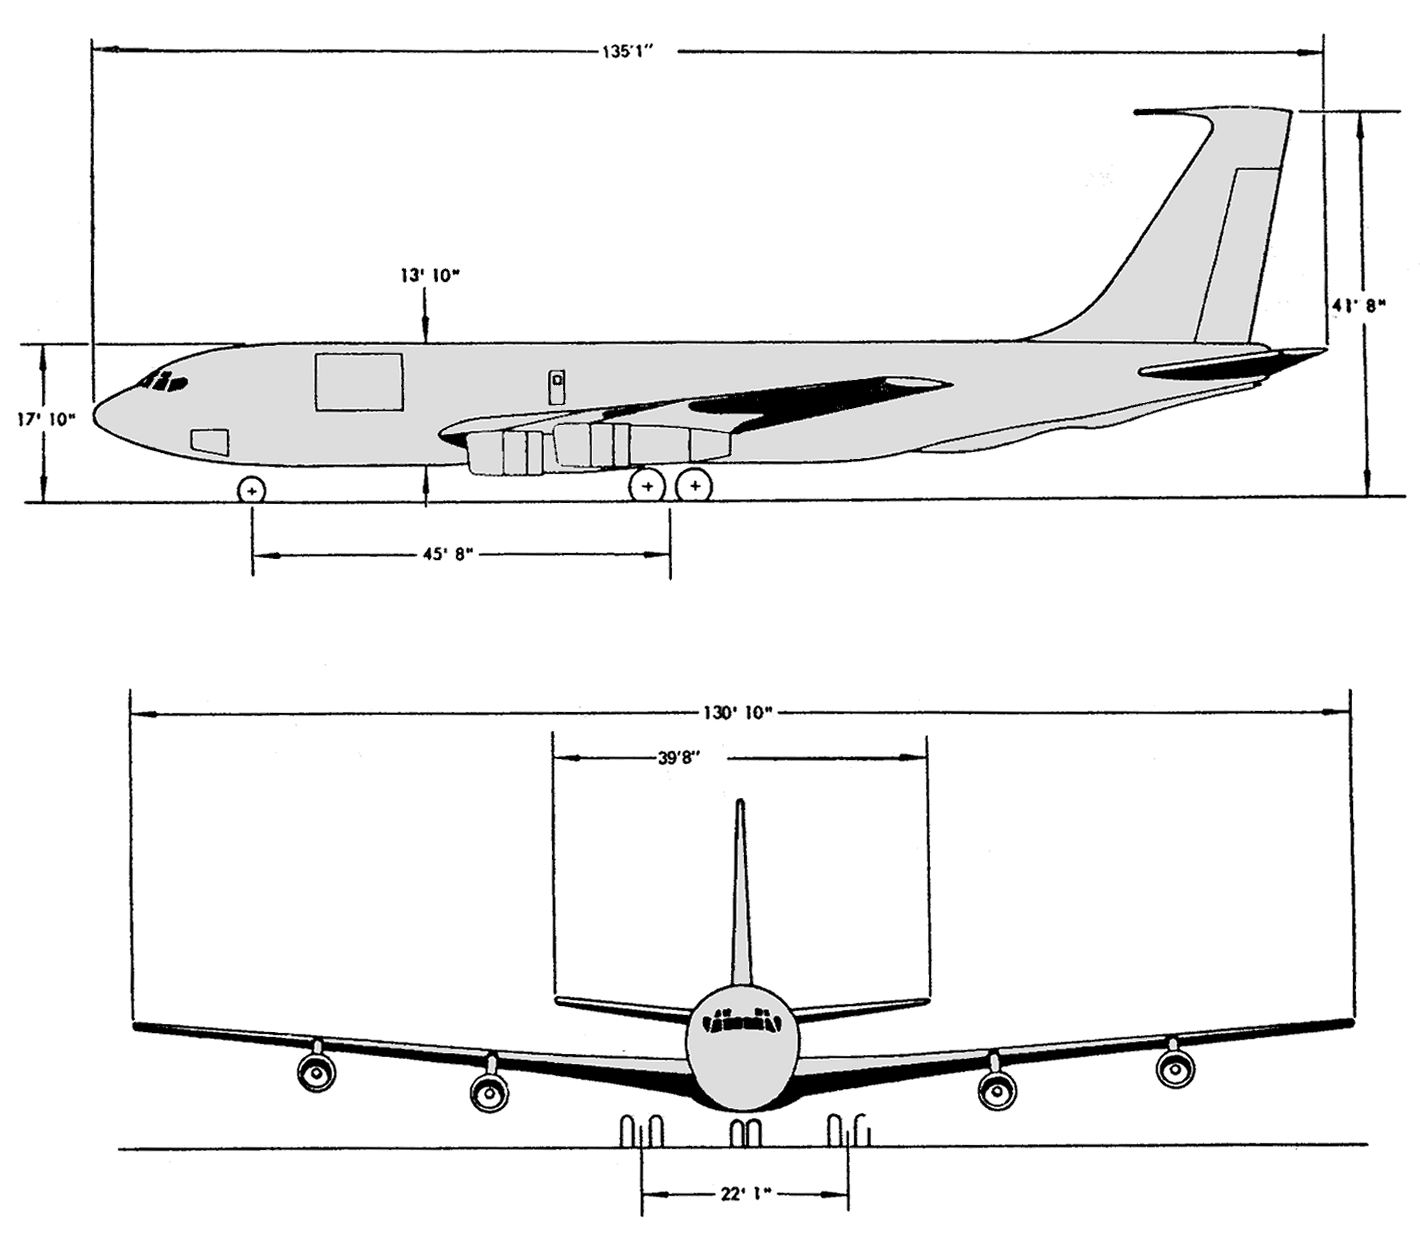 hight resolution of kc 135 engineering schematics wiring diagram load kc 135 engineering schematics